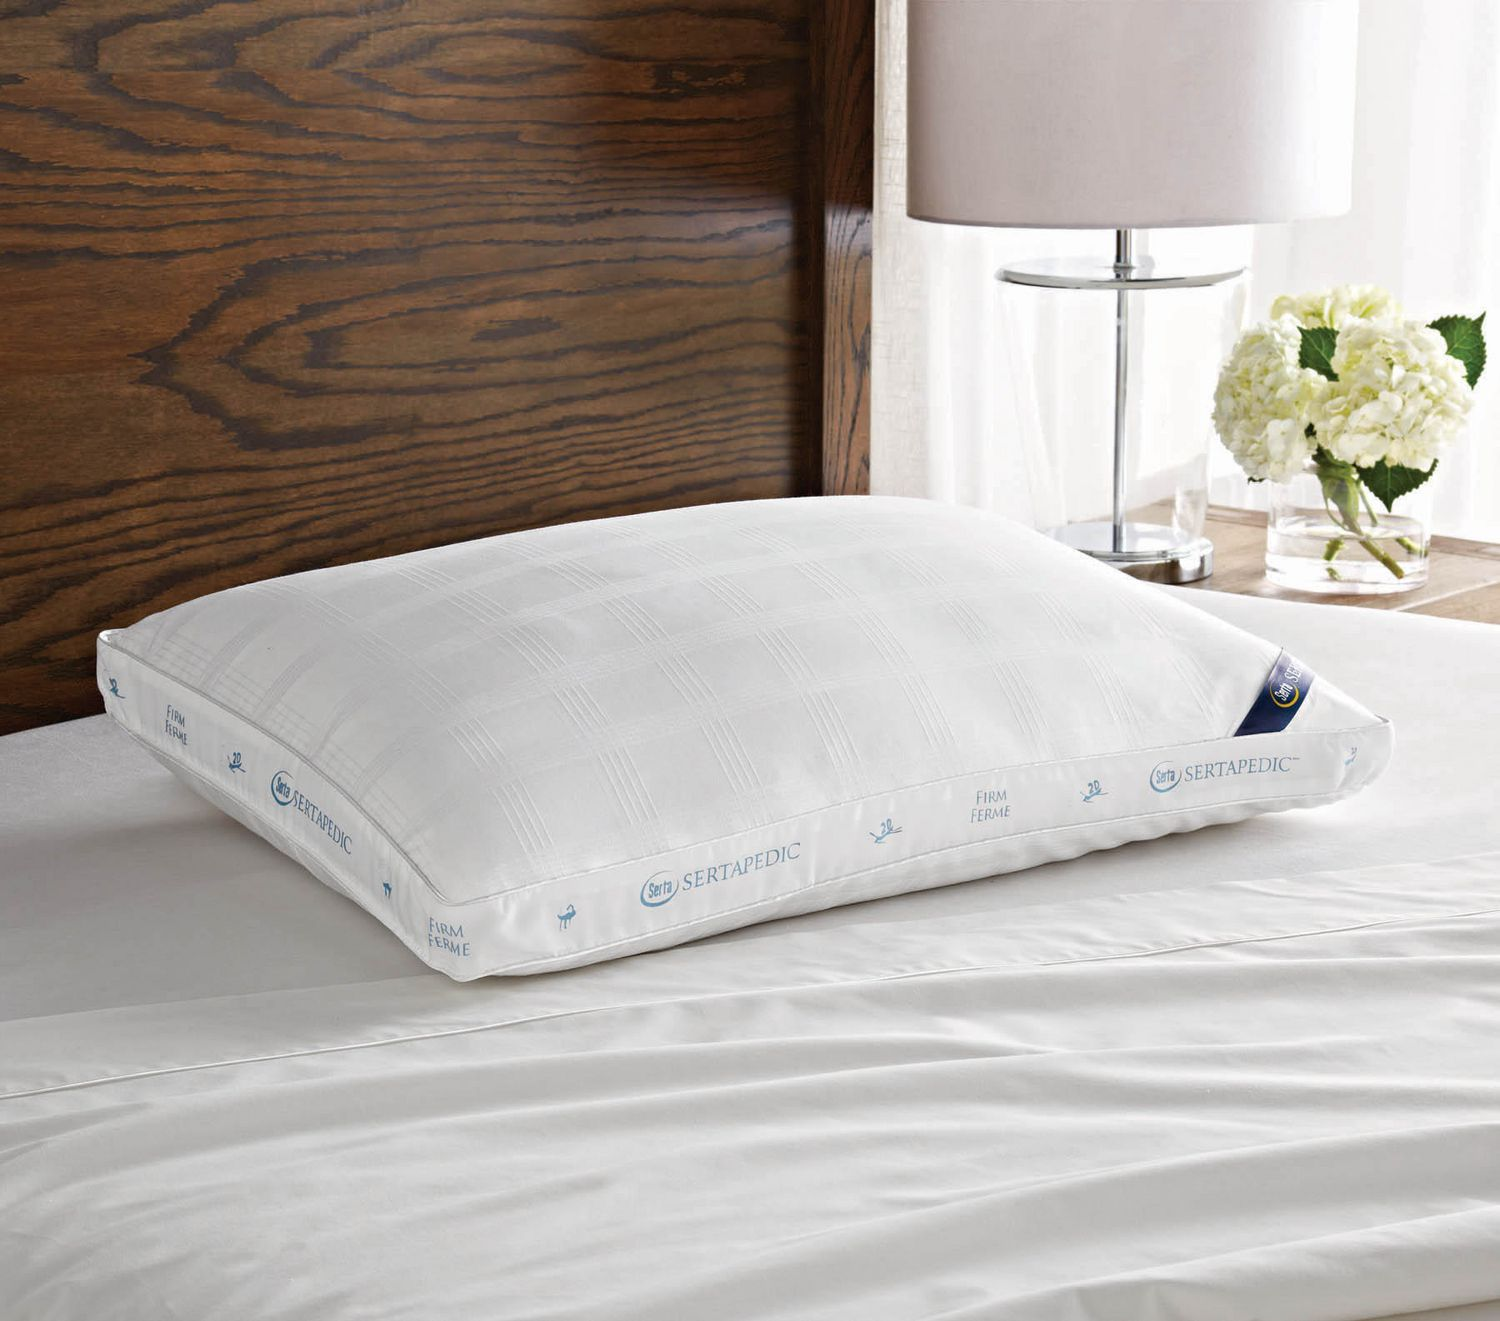 home wedge the dual bath zippered decor position n bluestone bedding pillows cloth terry bed cover white depot pillow b with